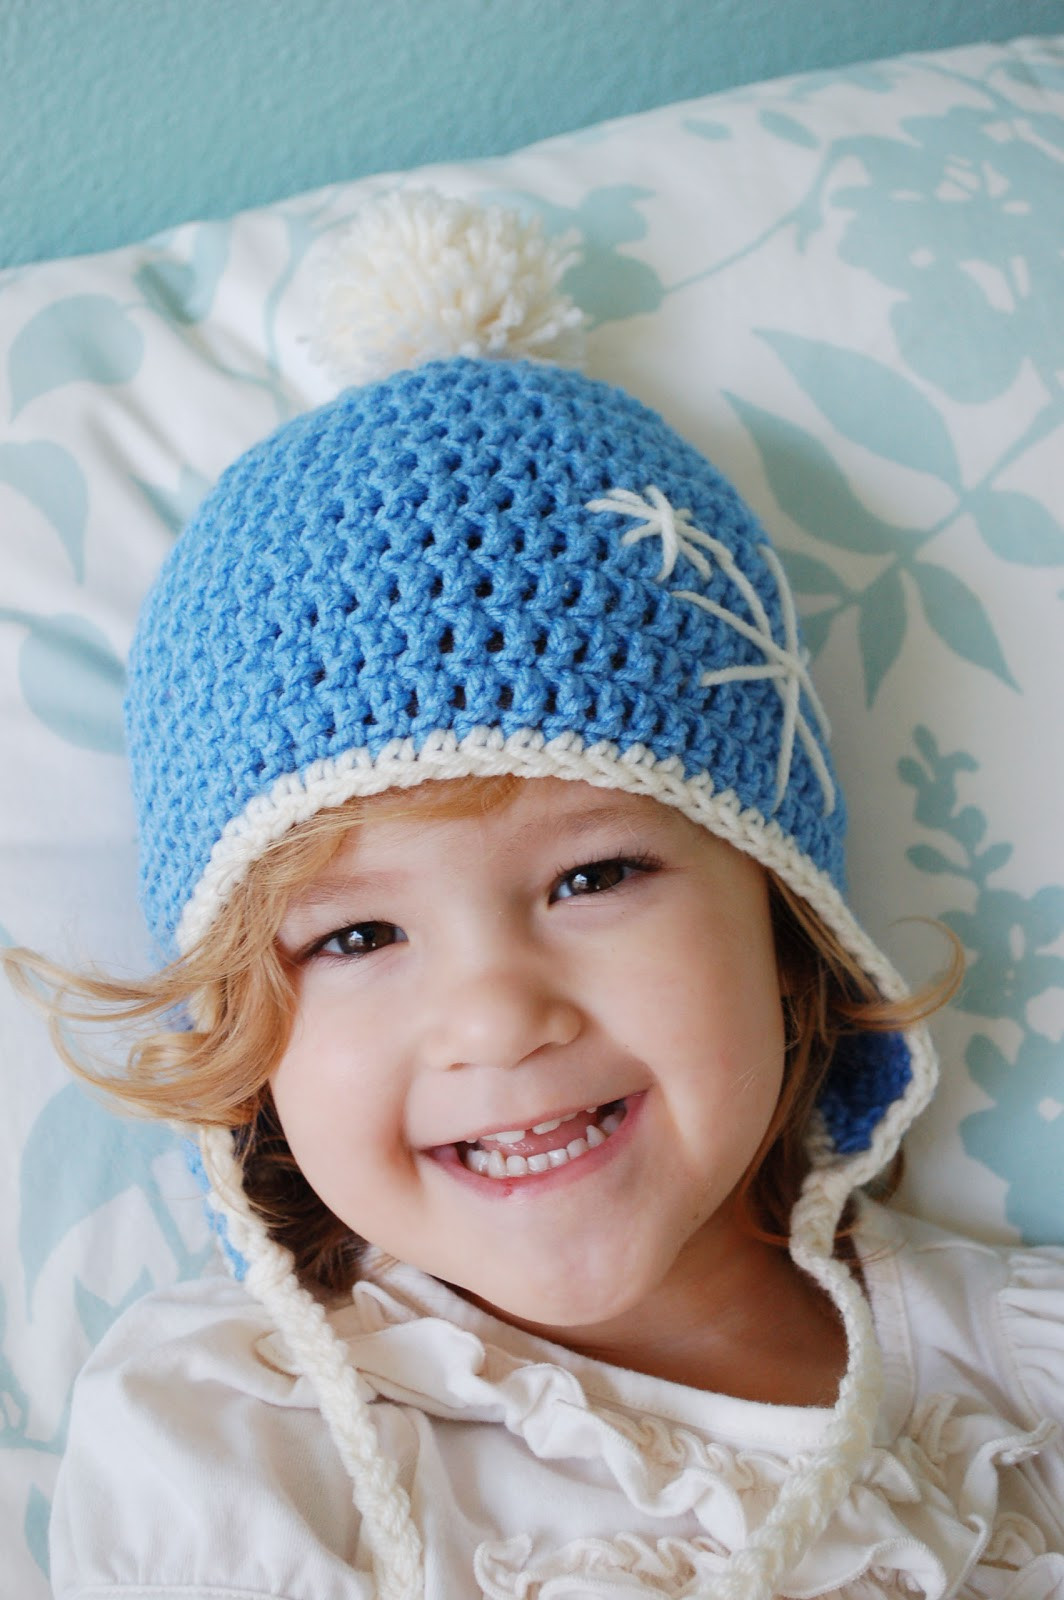 Awesome Free Crochet Patterns for Baby Hats with Ear Flaps Free Crochet Hat Patterns for Kids Of Beautiful 43 Photos Free Crochet Hat Patterns for Kids